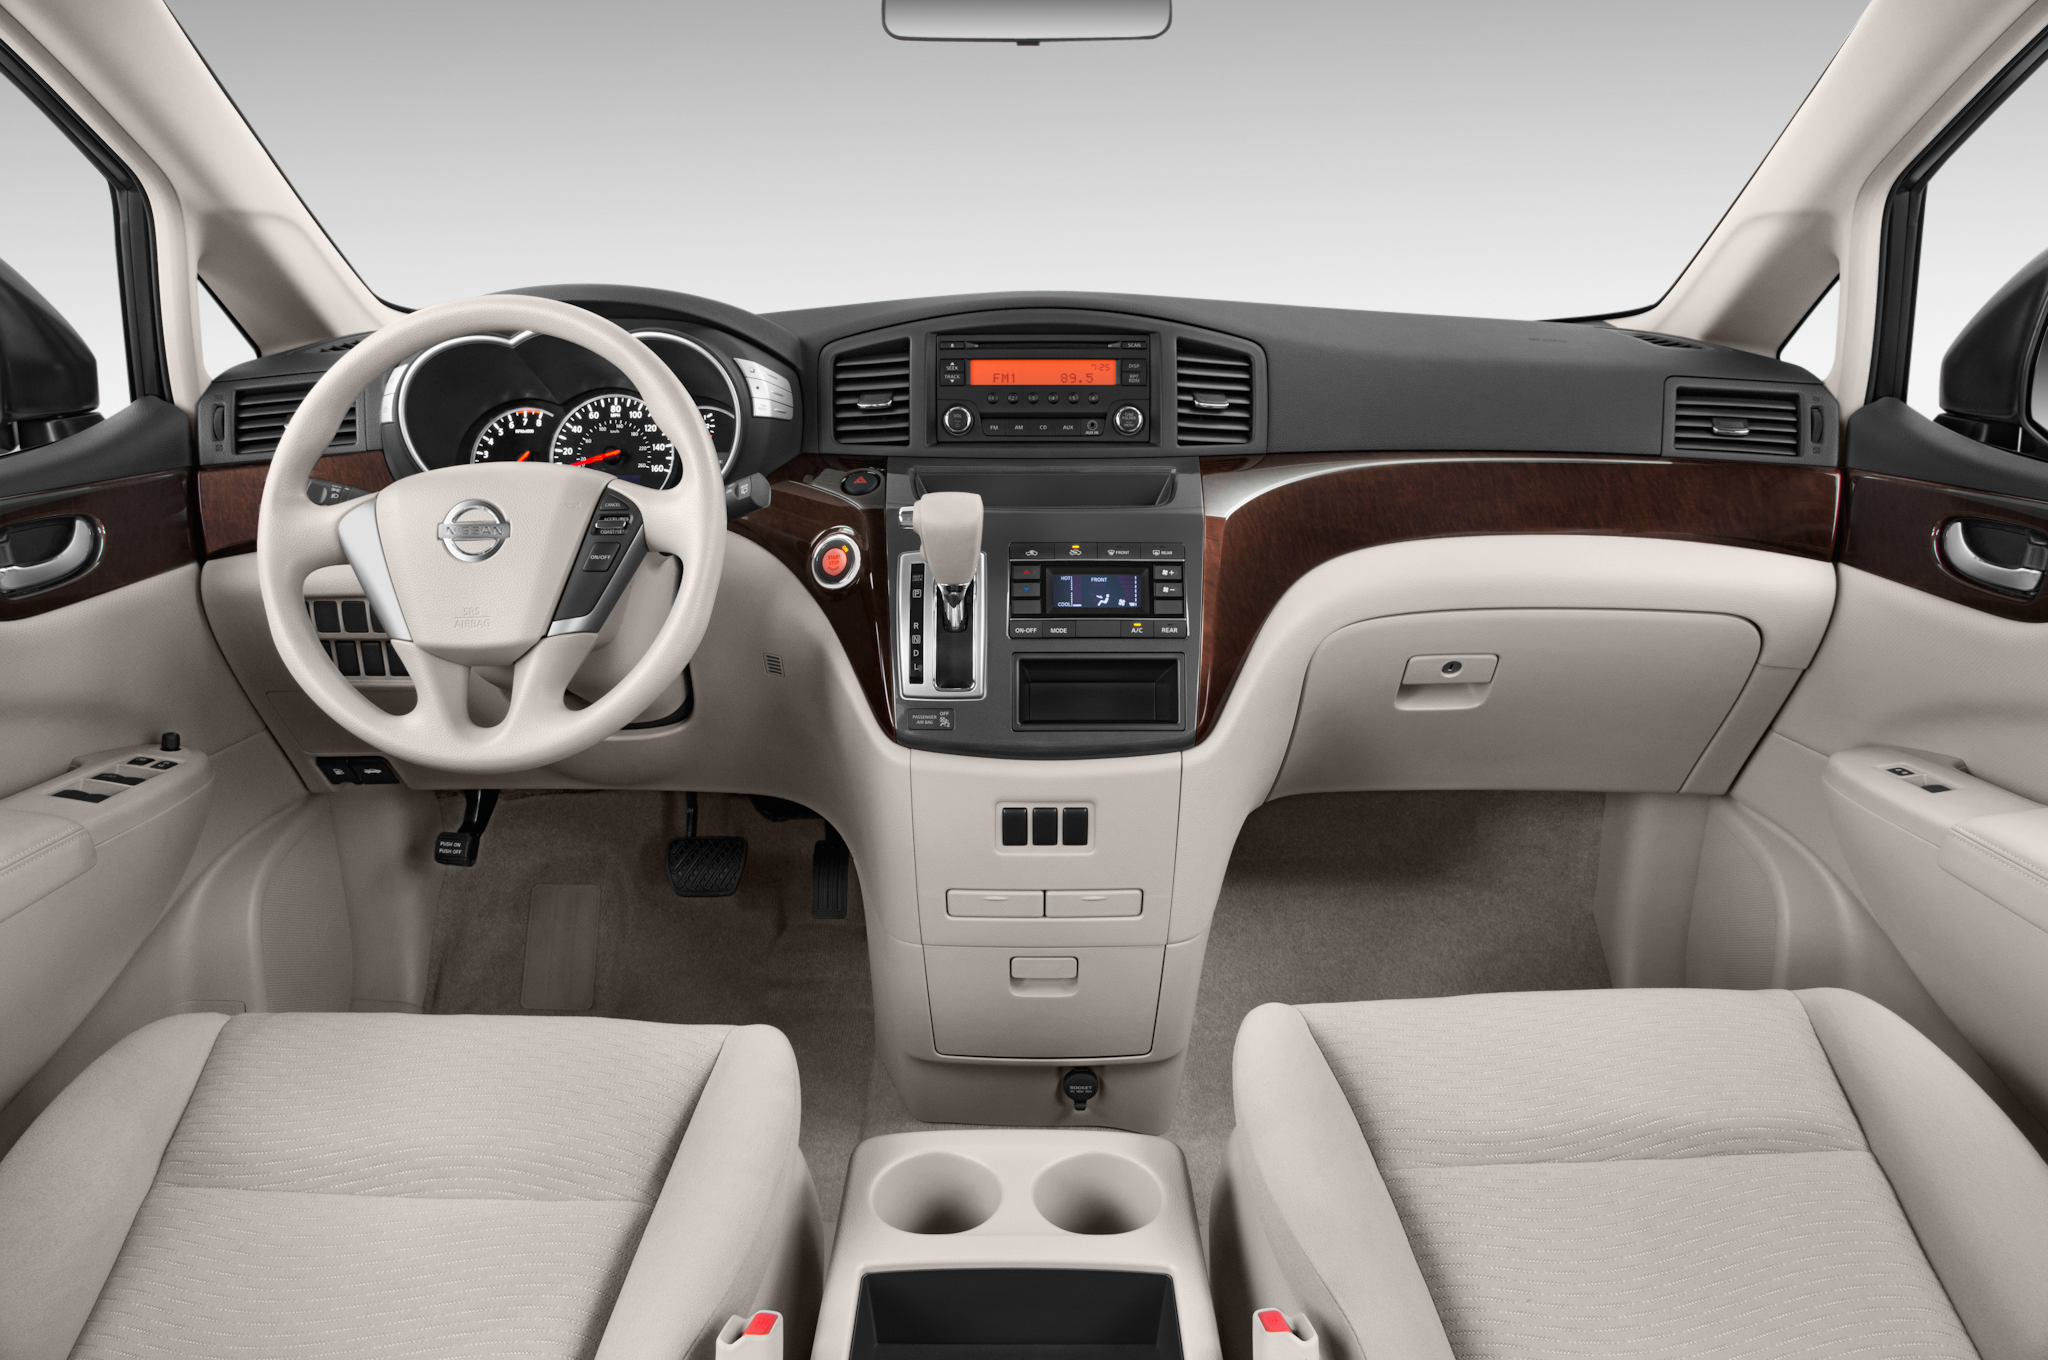 Exceptional Nissan Quest 2012 Source · Nissan S NV Commercial Van Will Begin Production  In 2011 Debut As